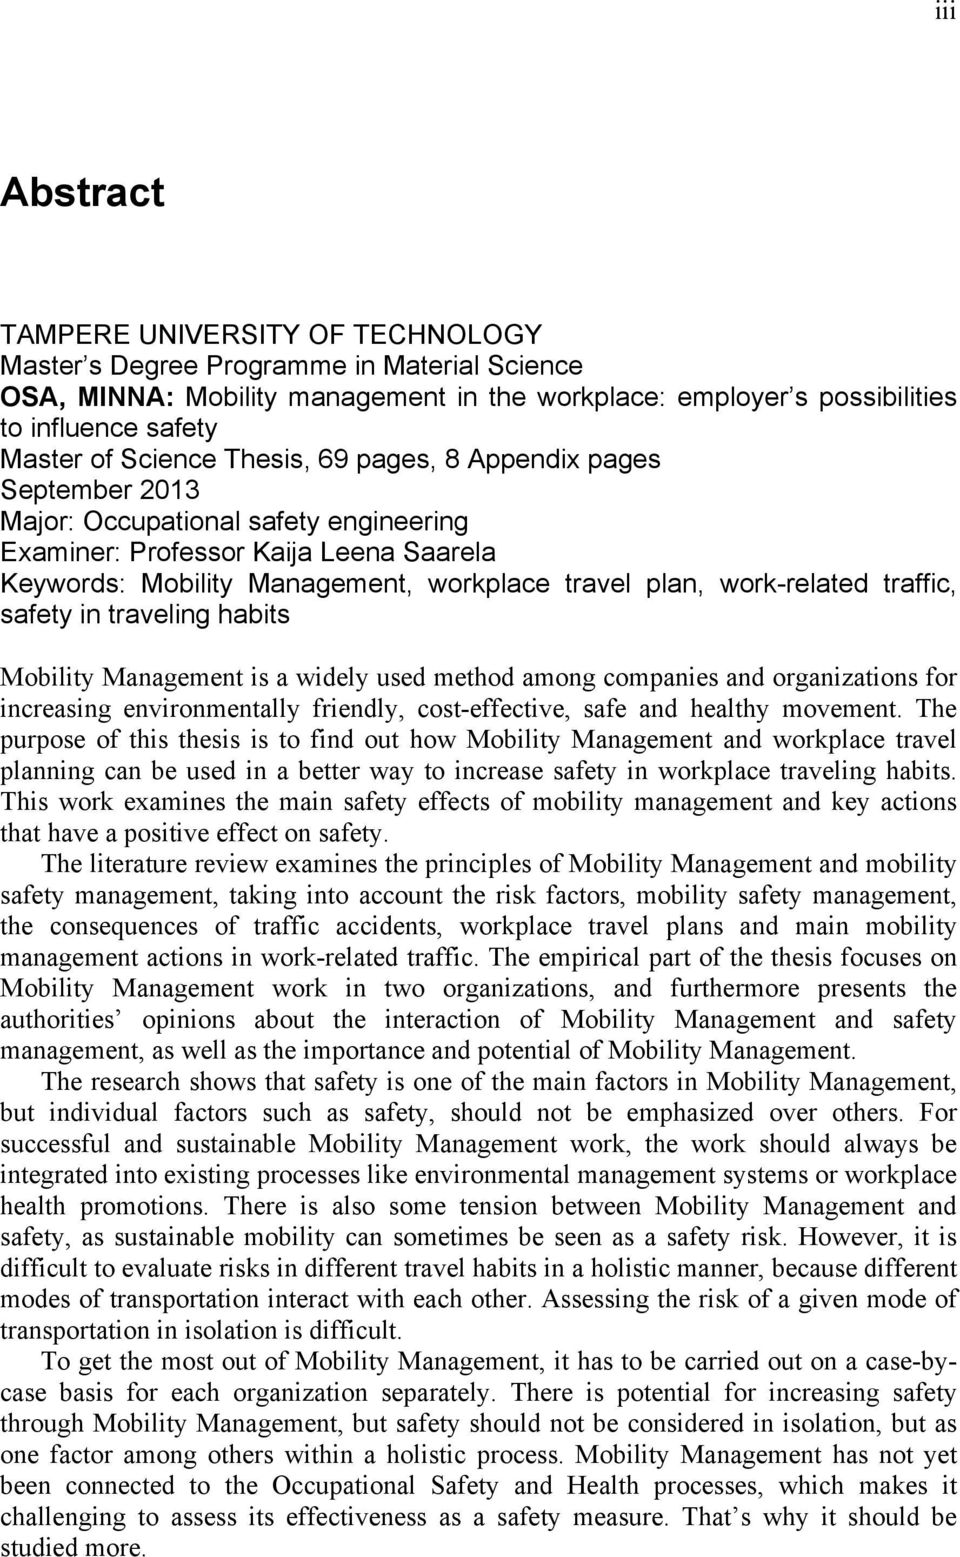 work-related traffic, safety in traveling habits Mobility Management is a widely used method among companies and organizations for increasing environmentally friendly, cost-effective, safe and